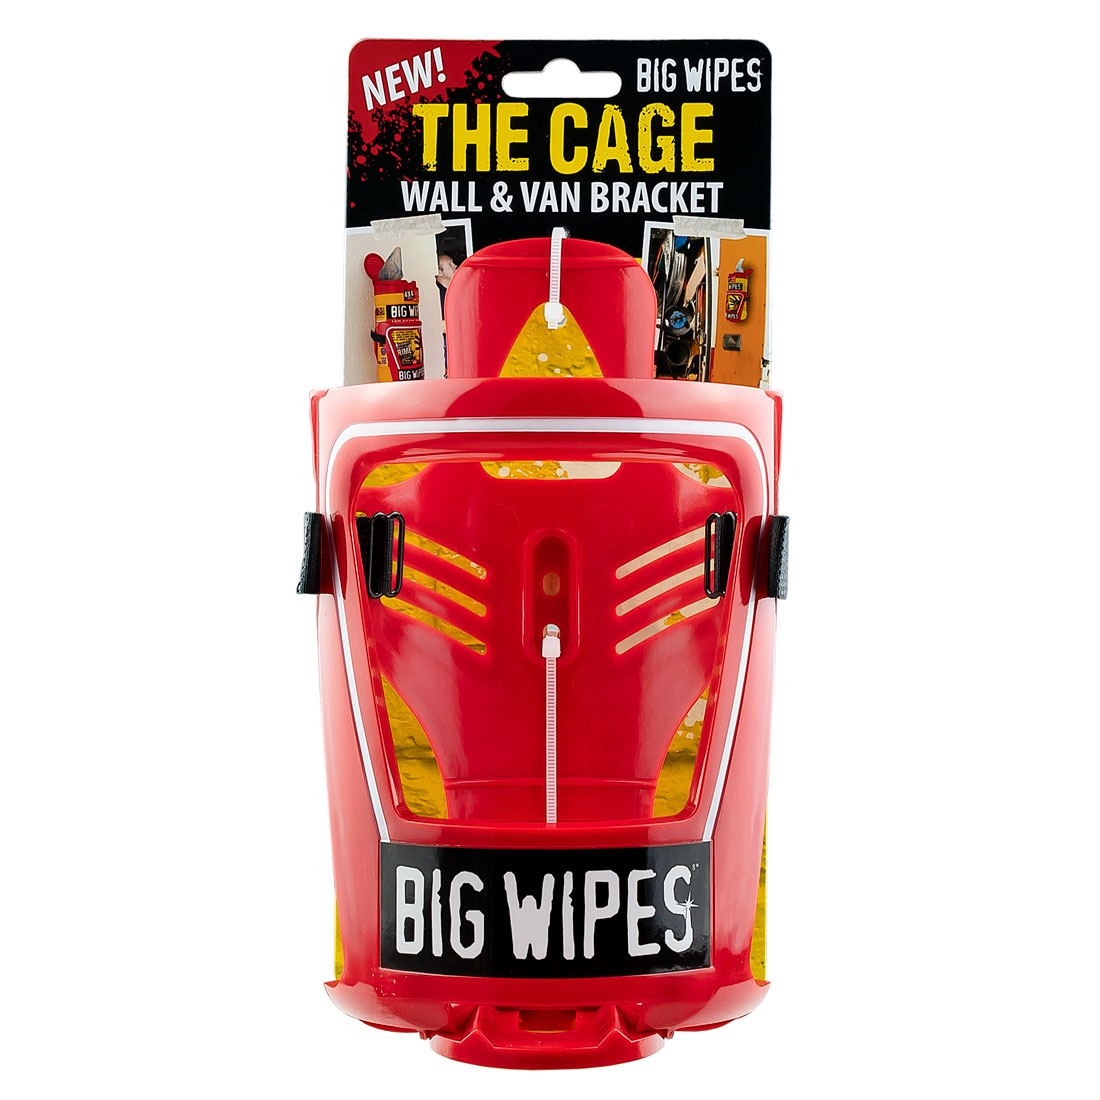 BIG WIPES Cage and Wall Bracket